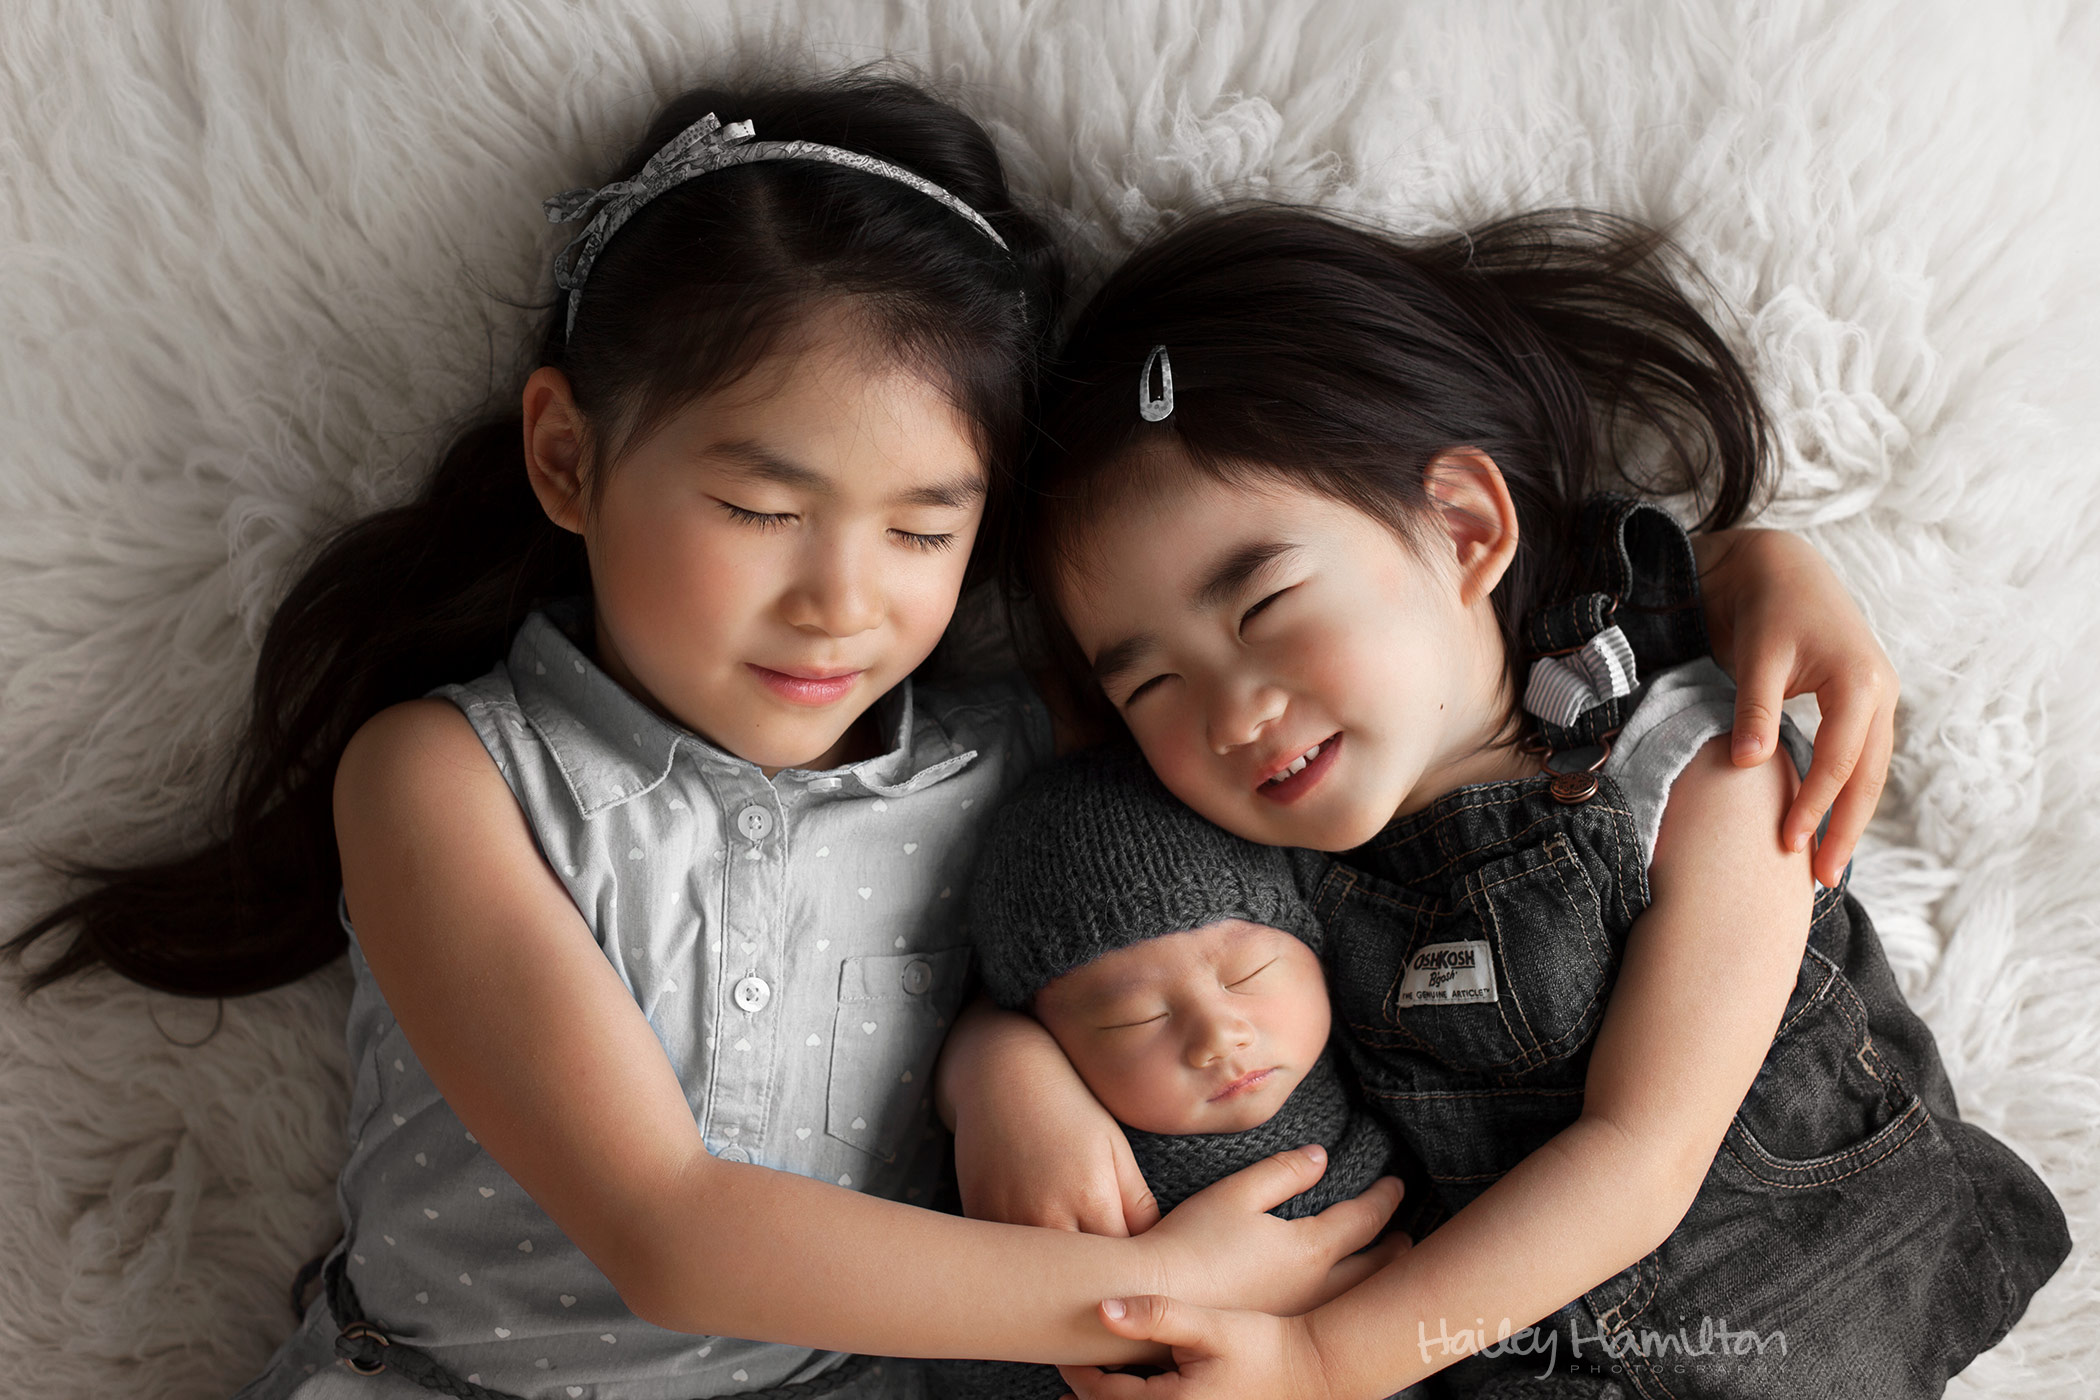 Sisters Posed with Newborn Baby Brother